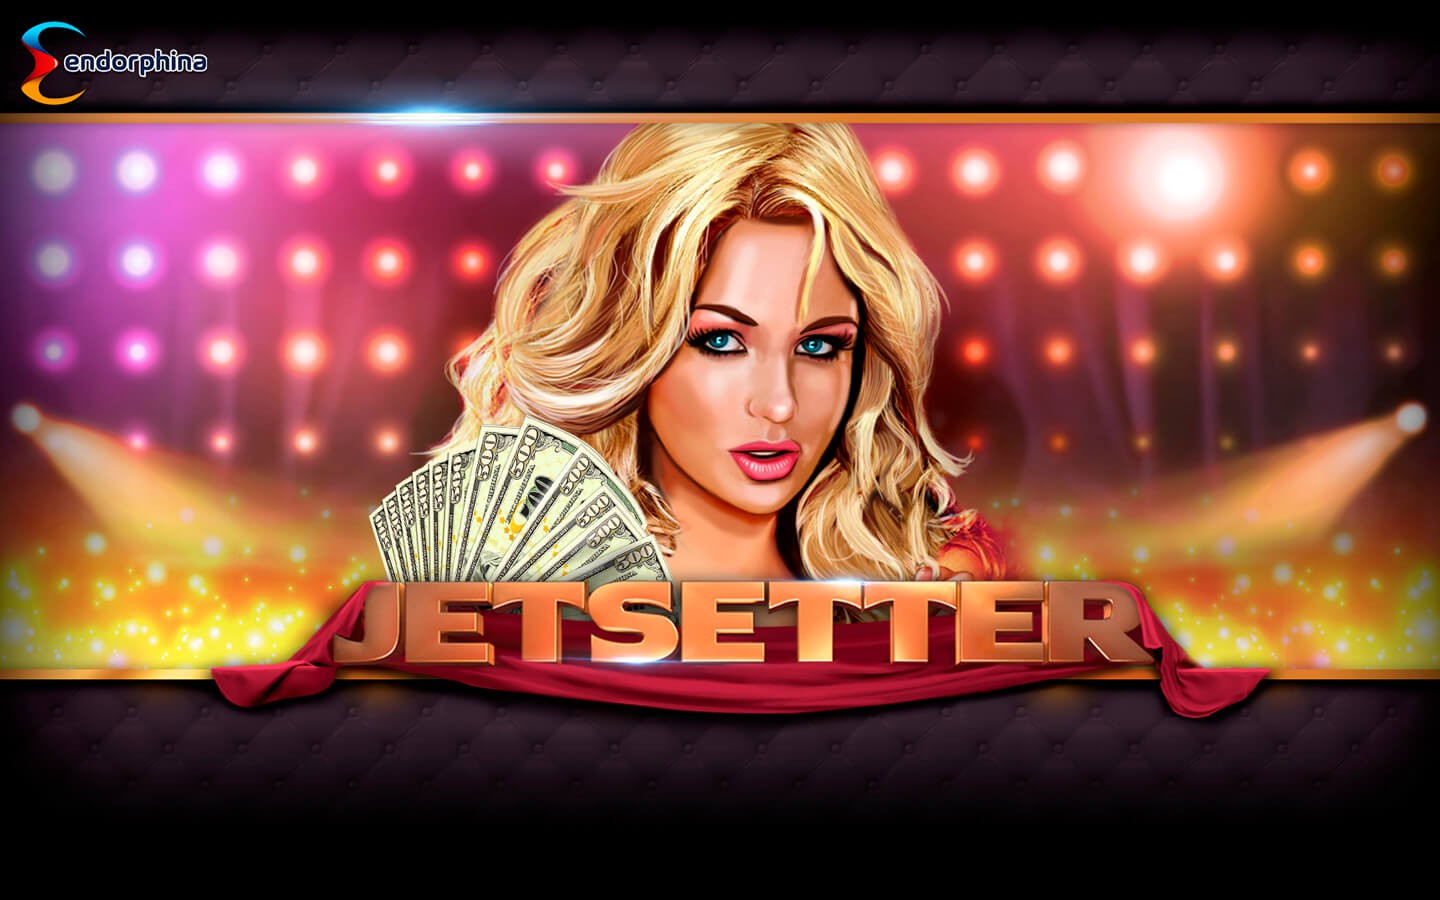 TOP LUXURY SLOTS ONLINE | Jetsetter Slot Solution by Endorphina